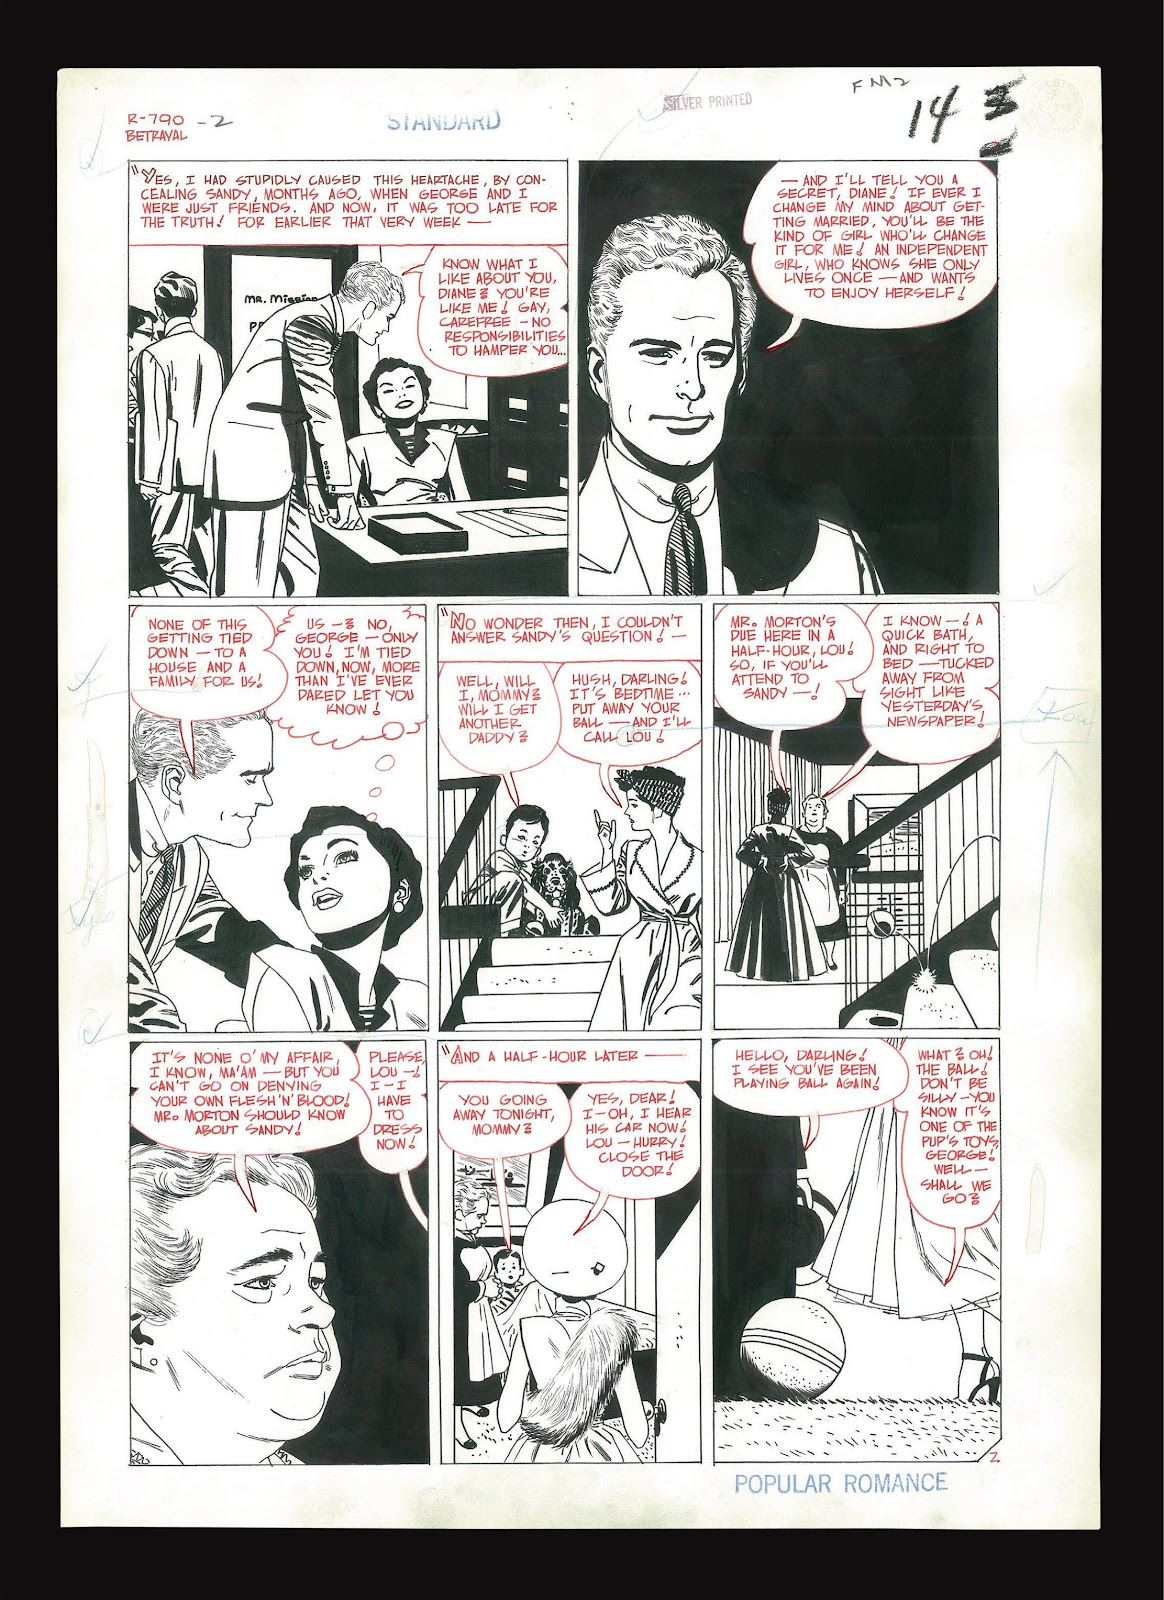 Read online Setting the Standard: Comics by Alex Toth 1952-1954 comic -  Issue # TPB (Part 4) - 119